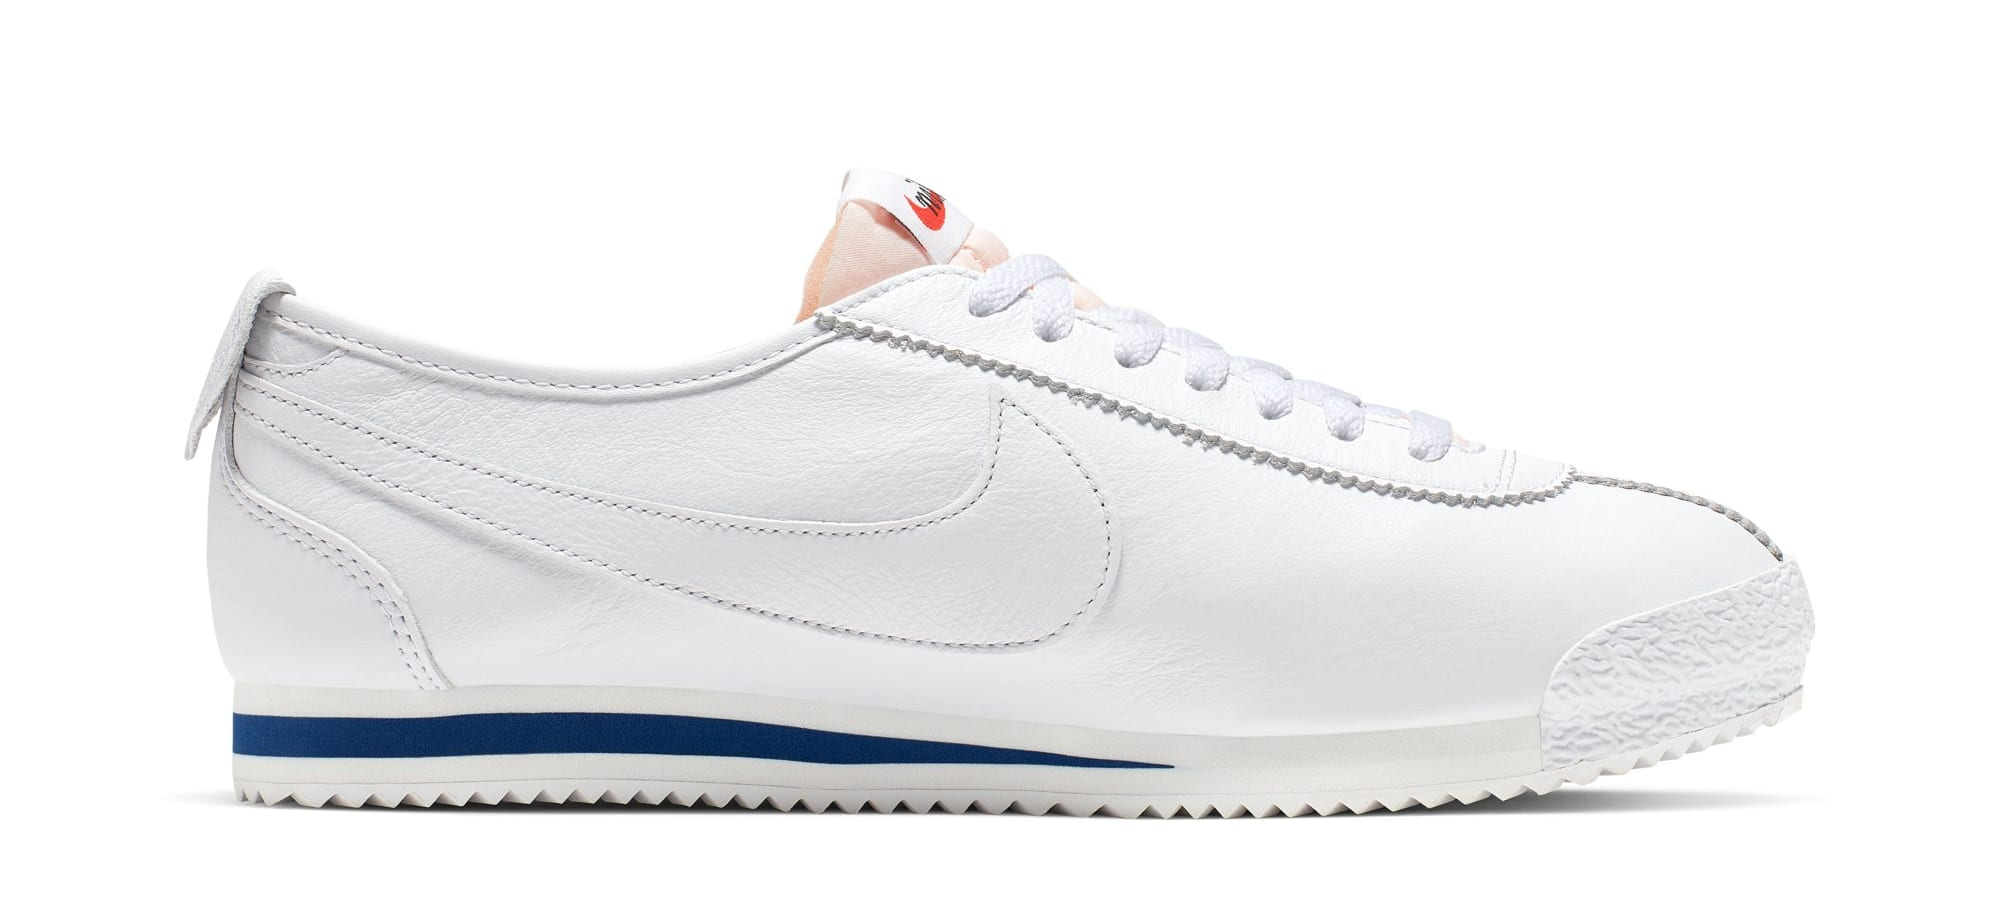 Nike Classic Cortez 'Shoe Dog Pack (Dimension Six)' CJ2586-101 (Medial)